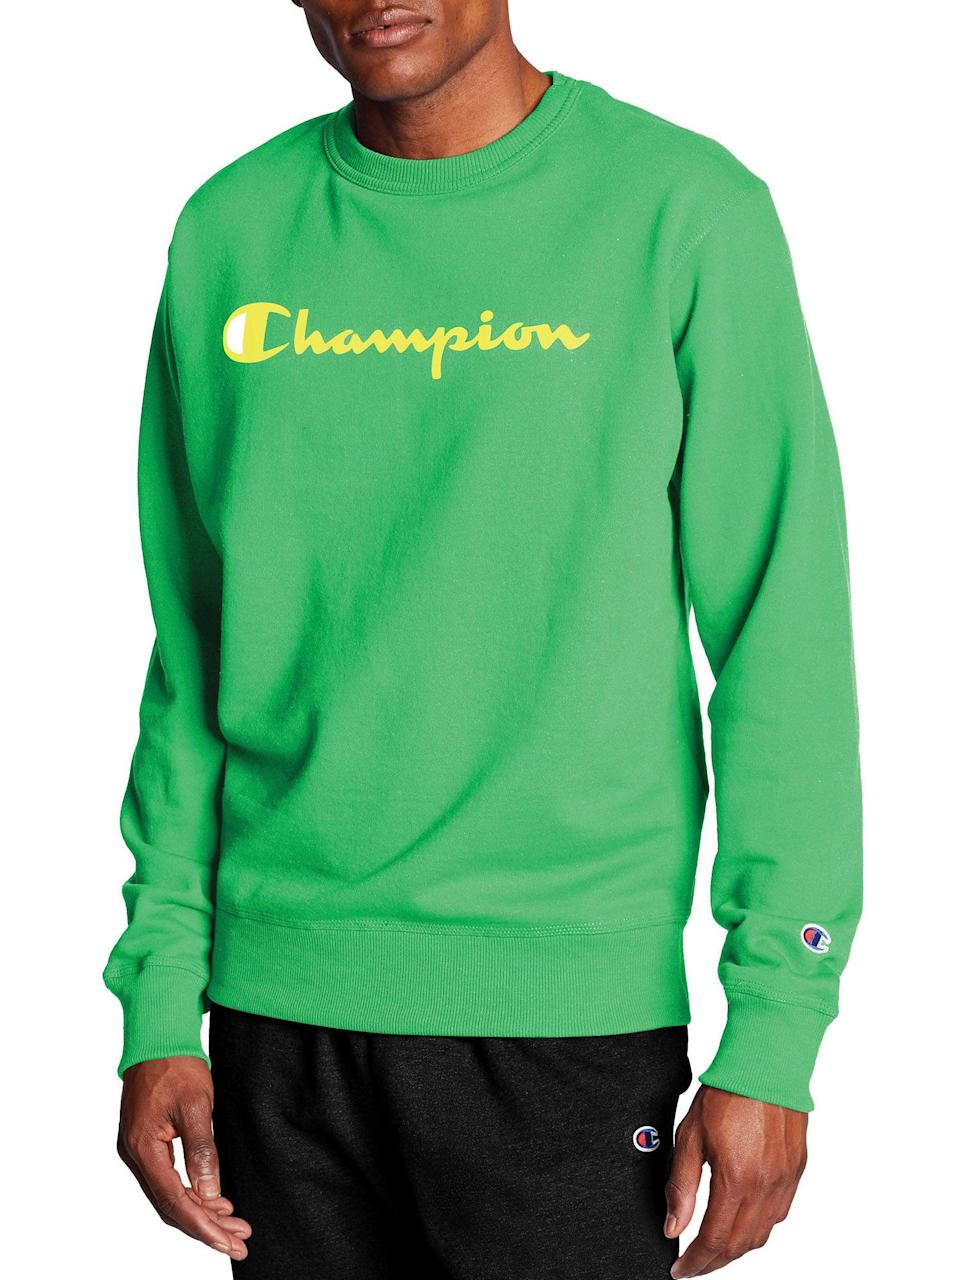 """<h2>40% Off Champion Powerblend Graphic Crew At Walmart</h2><br>""""As the fashion writer on the Shopping team, I spent days surfacing the <a href=""""https://www.refinery29.com/en-us/2020/10/10075070/womens-dresses-sale-amazon-prime-day-deals-2020"""" rel=""""nofollow noopener"""" target=""""_blank"""" data-ylk=""""slk:cutest dresses"""" class=""""link rapid-noclick-resp"""">cutest dresses</a> and <a href=""""https://www.refinery29.com/en-us/2020/10/10088461/womens-cozy-sweaters-outerwear-deals-amazon-prime-day-2020"""" rel=""""nofollow noopener"""" target=""""_blank"""" data-ylk=""""slk:coziest separates"""" class=""""link rapid-noclick-resp"""">coziest separates</a> that could be bought with Prime Day dollars. (I also uncovered a motherlode of top-rated, <a href=""""https://www.refinery29.com/en-us/2020/10/10076678/calvin-klein-underwear-amazon-prime-day-deal-sale-2020"""" rel=""""nofollow noopener"""" target=""""_blank"""" data-ylk=""""slk:marked-down unmentionables from Calvin Klein"""" class=""""link rapid-noclick-resp"""">marked-down unmentionables from Calvin Klein</a>.) I dipped into a few counter-sales, and I can tell you that <a href=""""https://www.refinery29.com/en-us/2020/10/10083680/walmart-big-save-event-deals-prime-day-2020"""" rel=""""nofollow noopener"""" target=""""_blank"""" data-ylk=""""slk:Walmart is coming for the Prime Day throne"""" class=""""link rapid-noclick-resp"""">Walmart is coming for the Prime Day throne</a> — there was some surprisingly good fashion steals on — what else? — loungewear. I very quickly carted up this Leprechaun-green men's sweatshirt for chilly mornings to come.""""<br><br><em>— Emily Ruane, Fashion Market Writer</em><br><br><strong>Champion</strong> Powerblend Graphic Crew, $, available at <a href=""""https://go.skimresources.com/?id=30283X879131&url=https%3A%2F%2Fwww.walmart.com%2Fip%2FChampion-Men-s-Powerblend-Graphic-Crew%2F220350675%3FvariantFieldId%3Dactual_color"""" rel=""""nofollow noopener"""" target=""""_blank"""" data-ylk=""""slk:Walmart"""" class=""""link rapid-noclick-resp"""">Walmart</a>"""